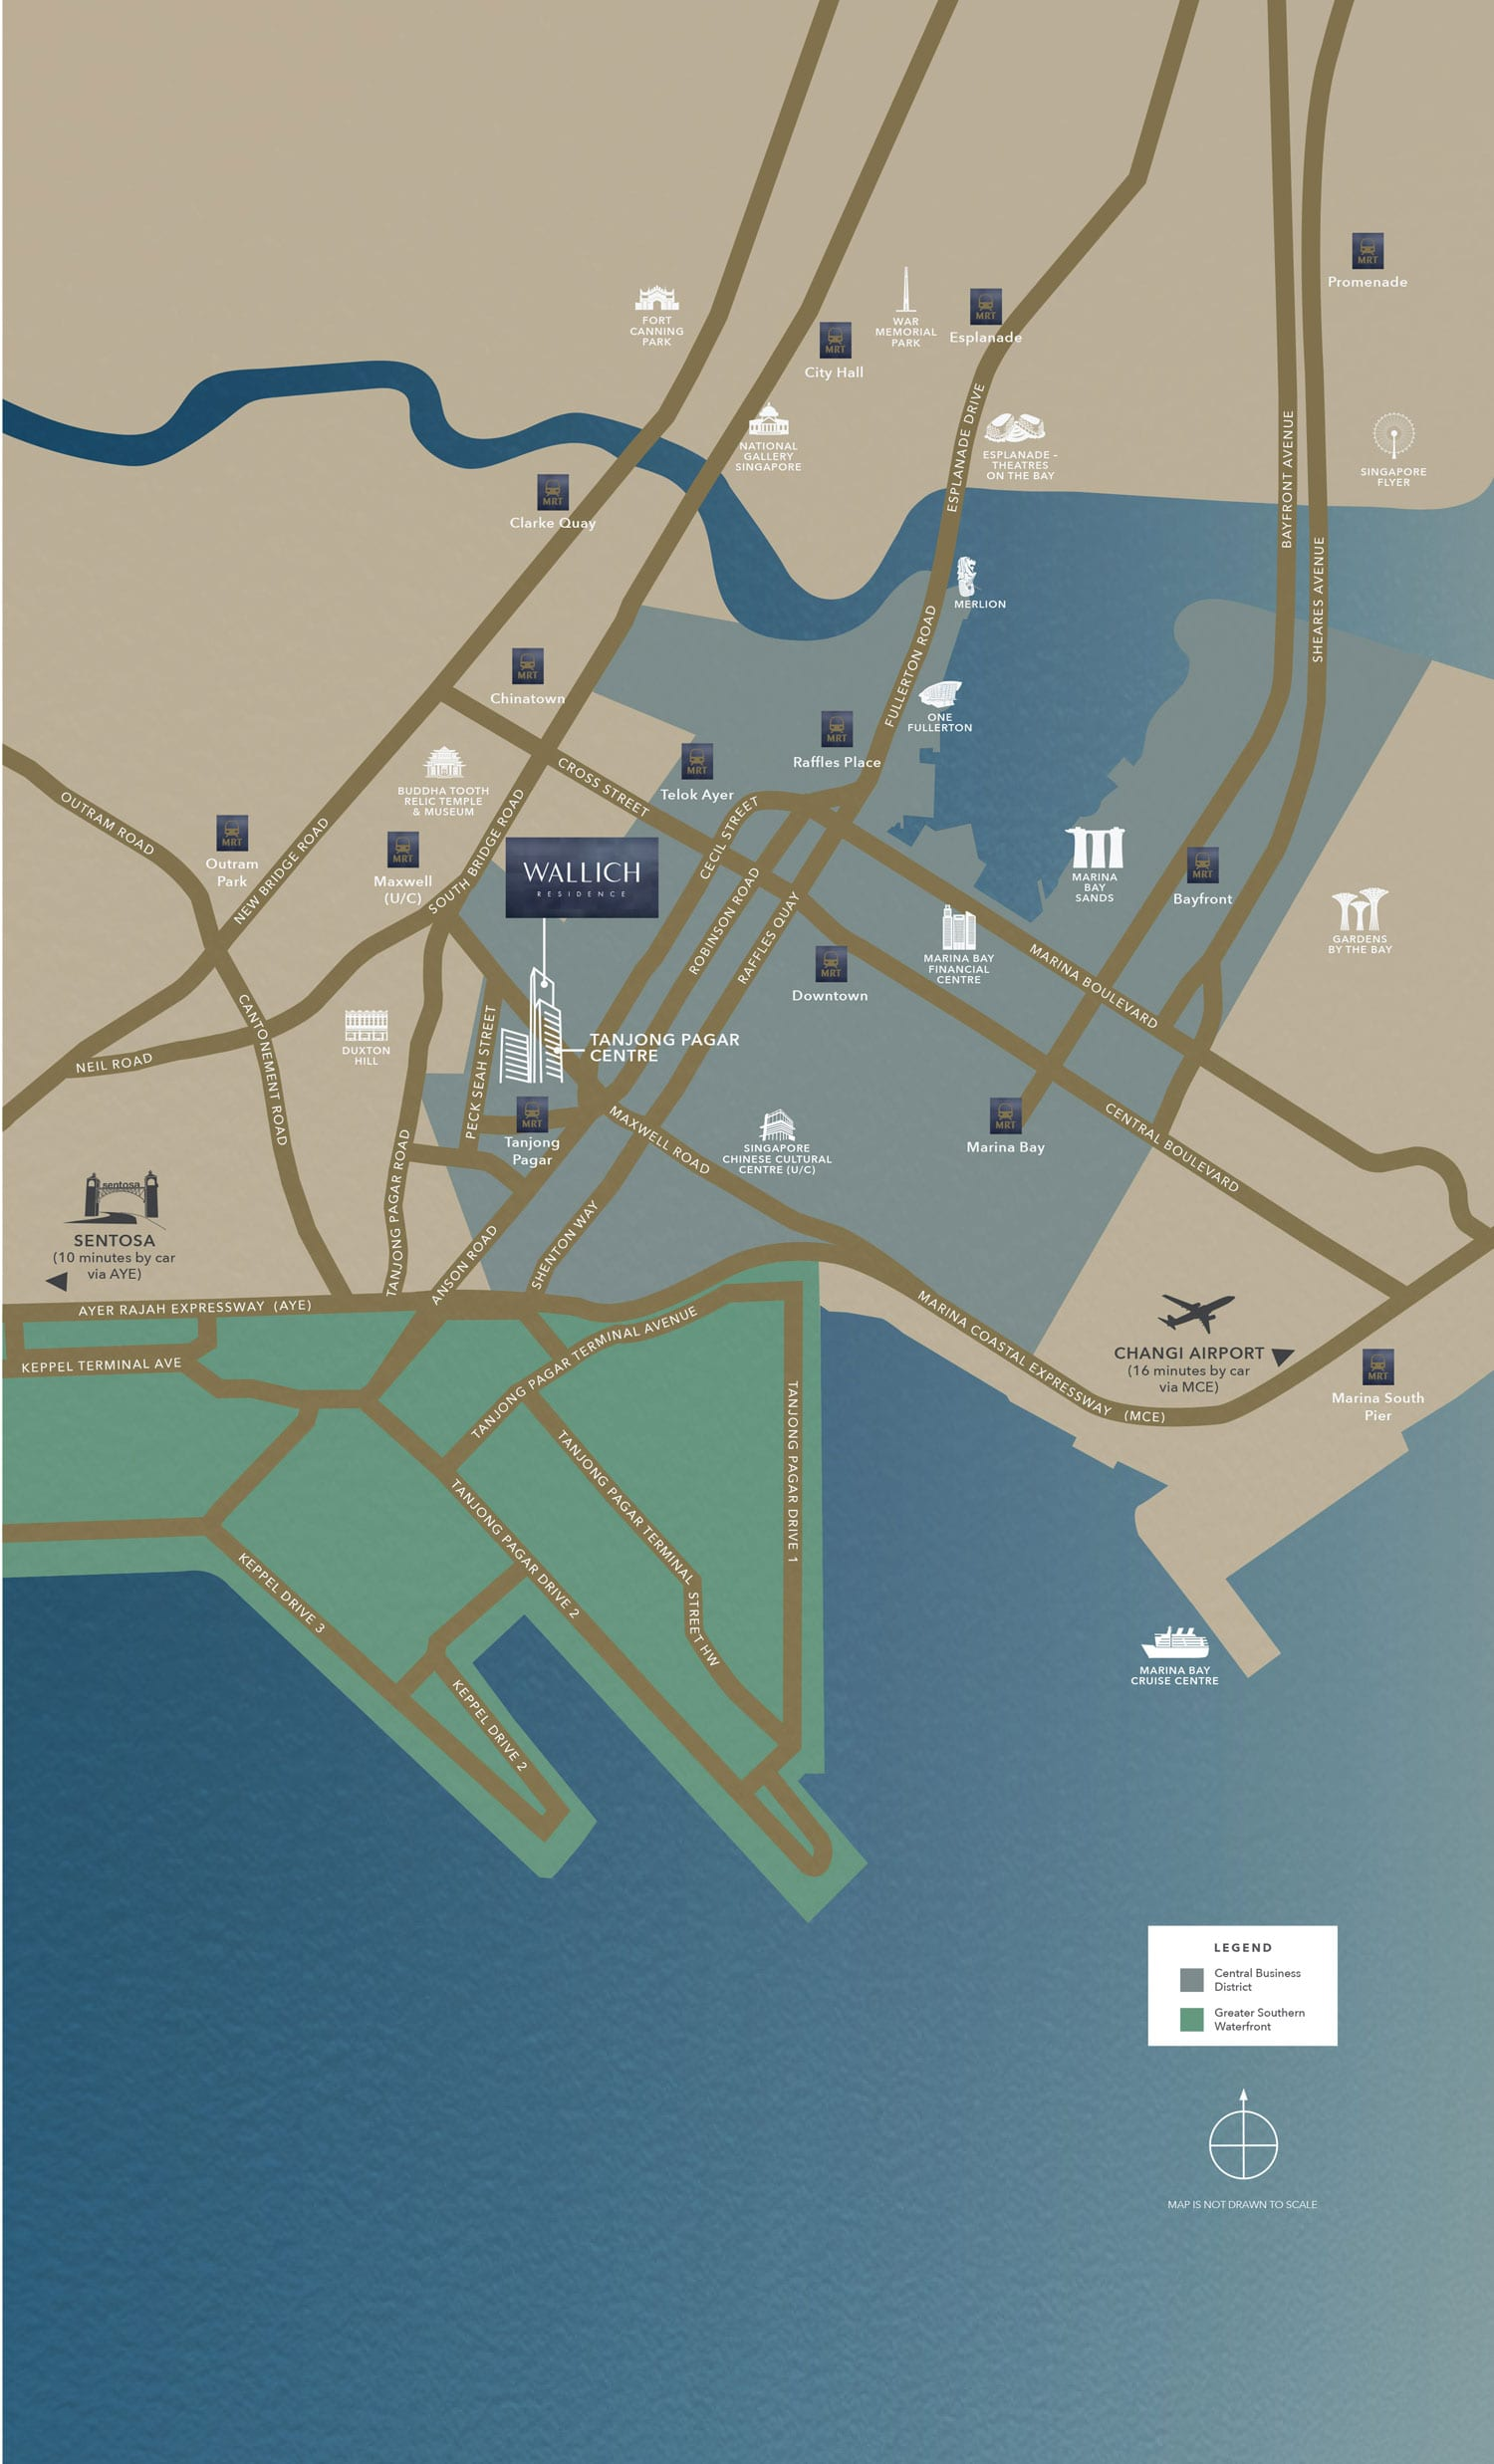 Wallich Residence | SG Tallest Luxury Condo Location Map